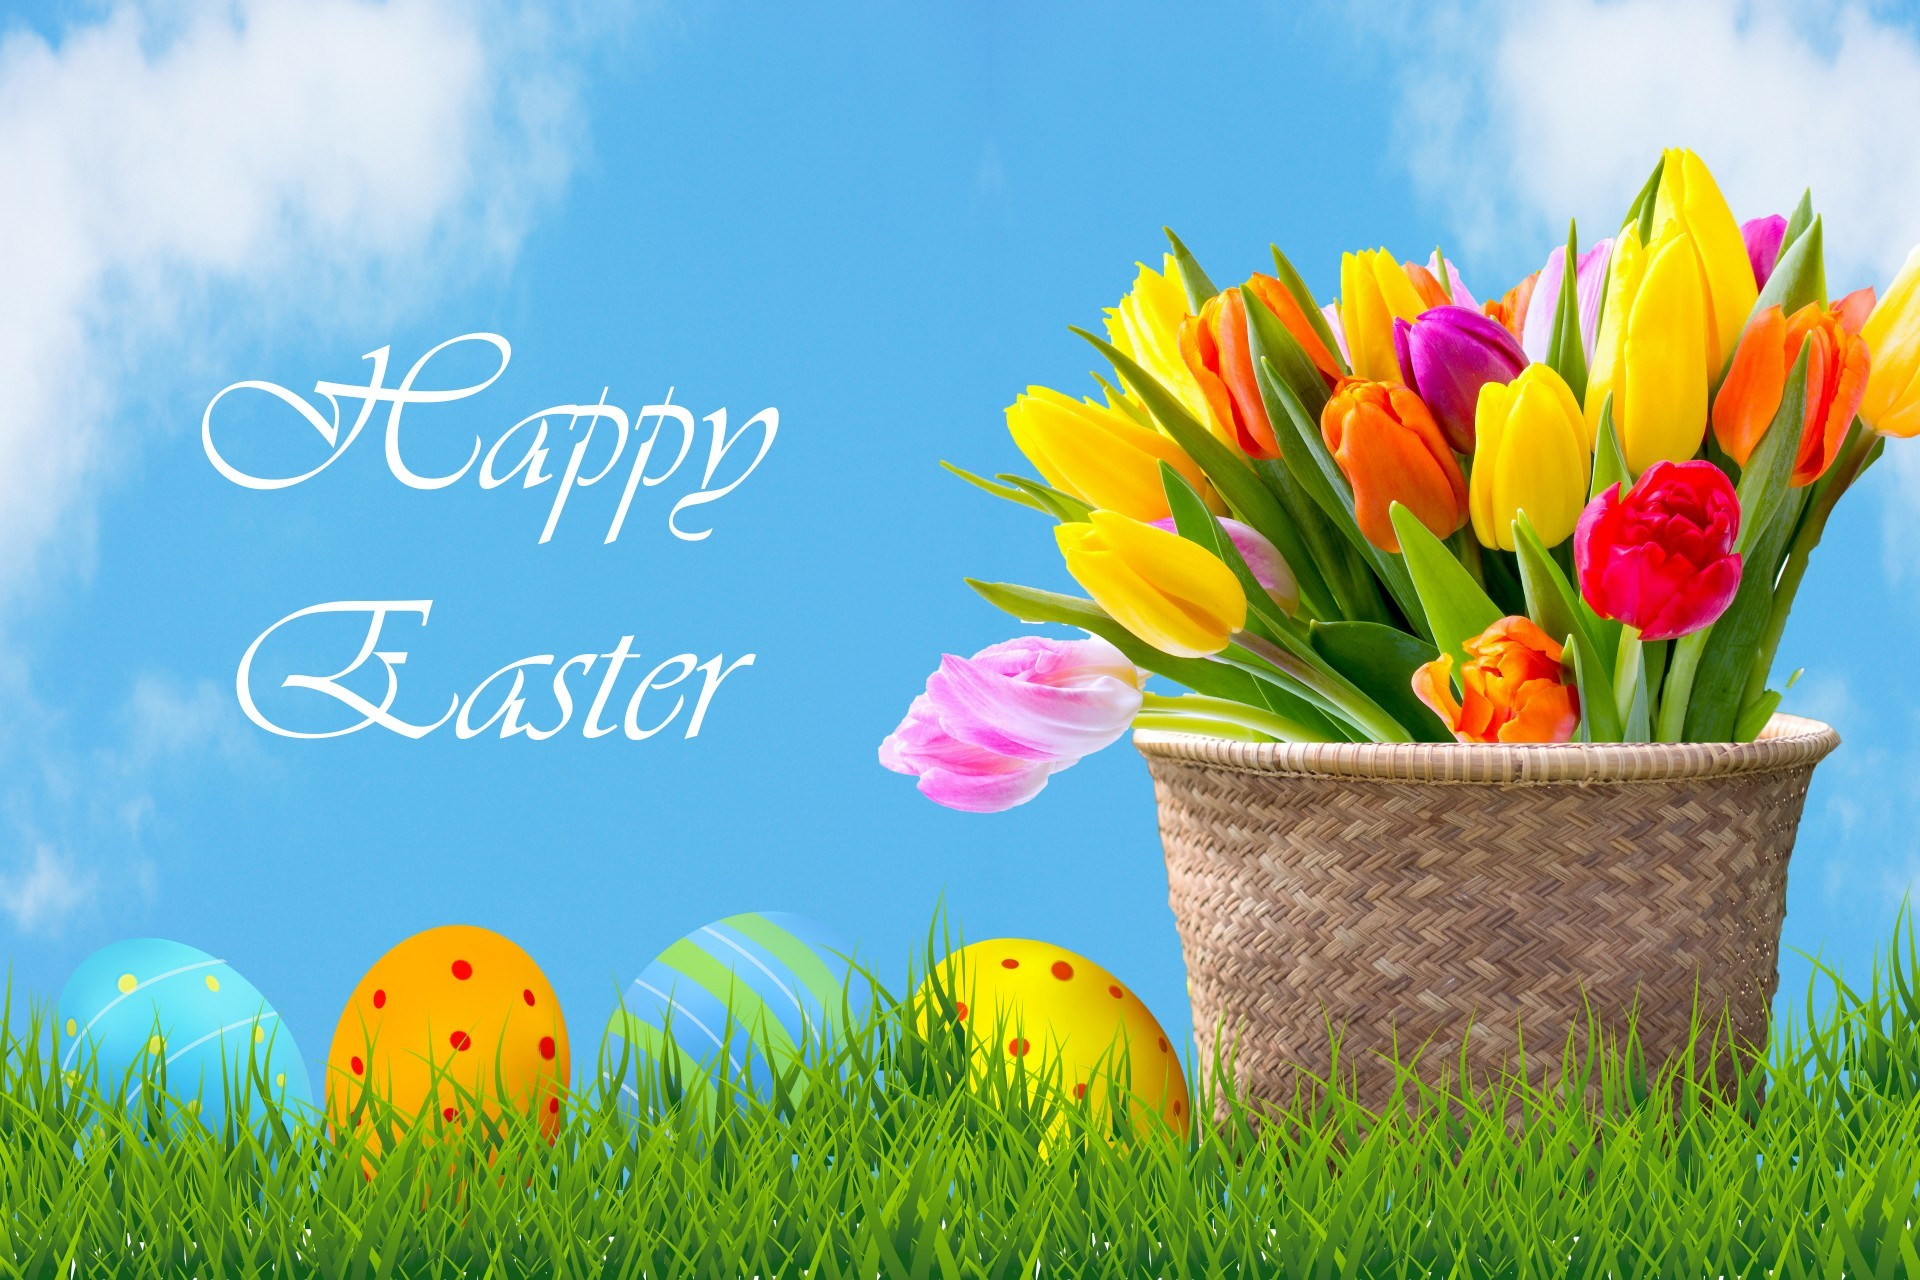 Easter Wallpapers Hd Download Free Colletion 60: Happy Easter Backgrounds For Desktop (66+ Images